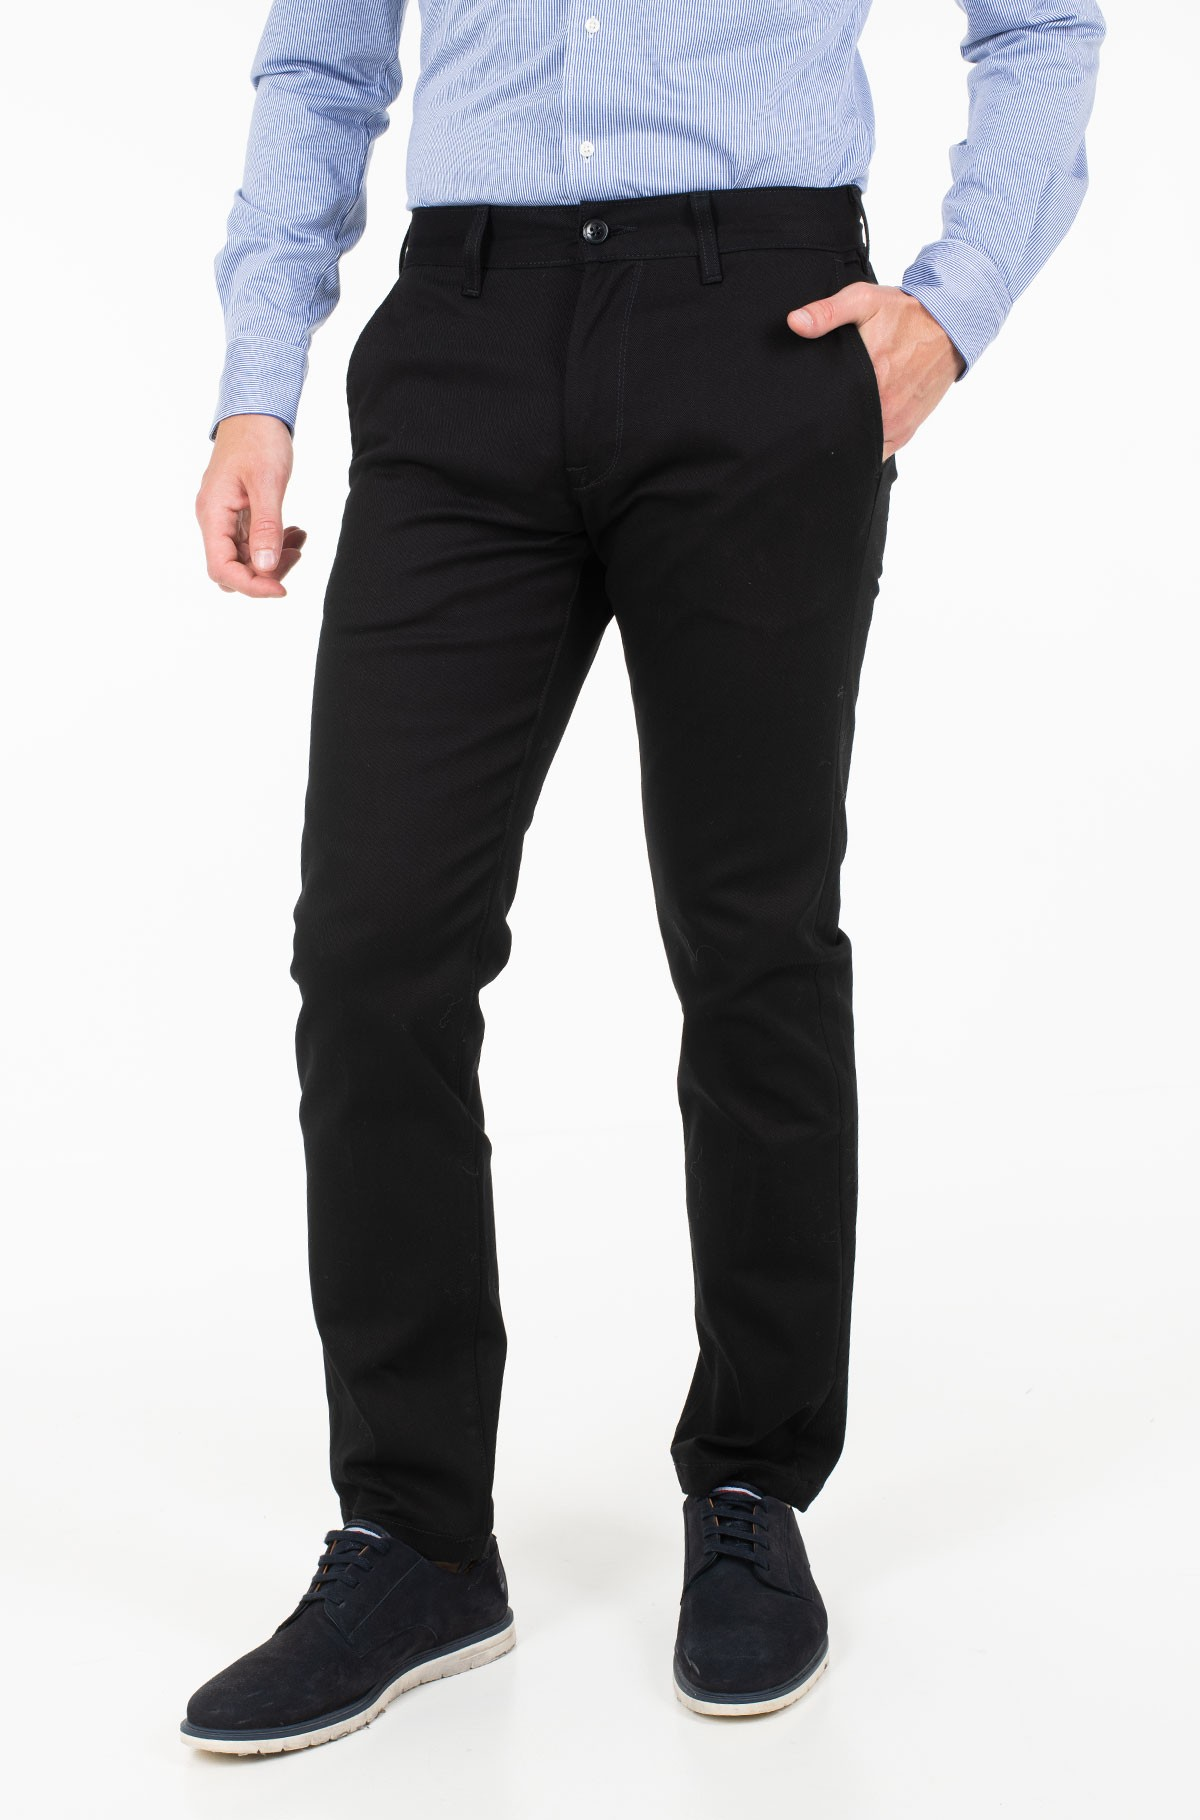 Teksapüksid RELAXED FIT CHINO STR CLEAN-full-1